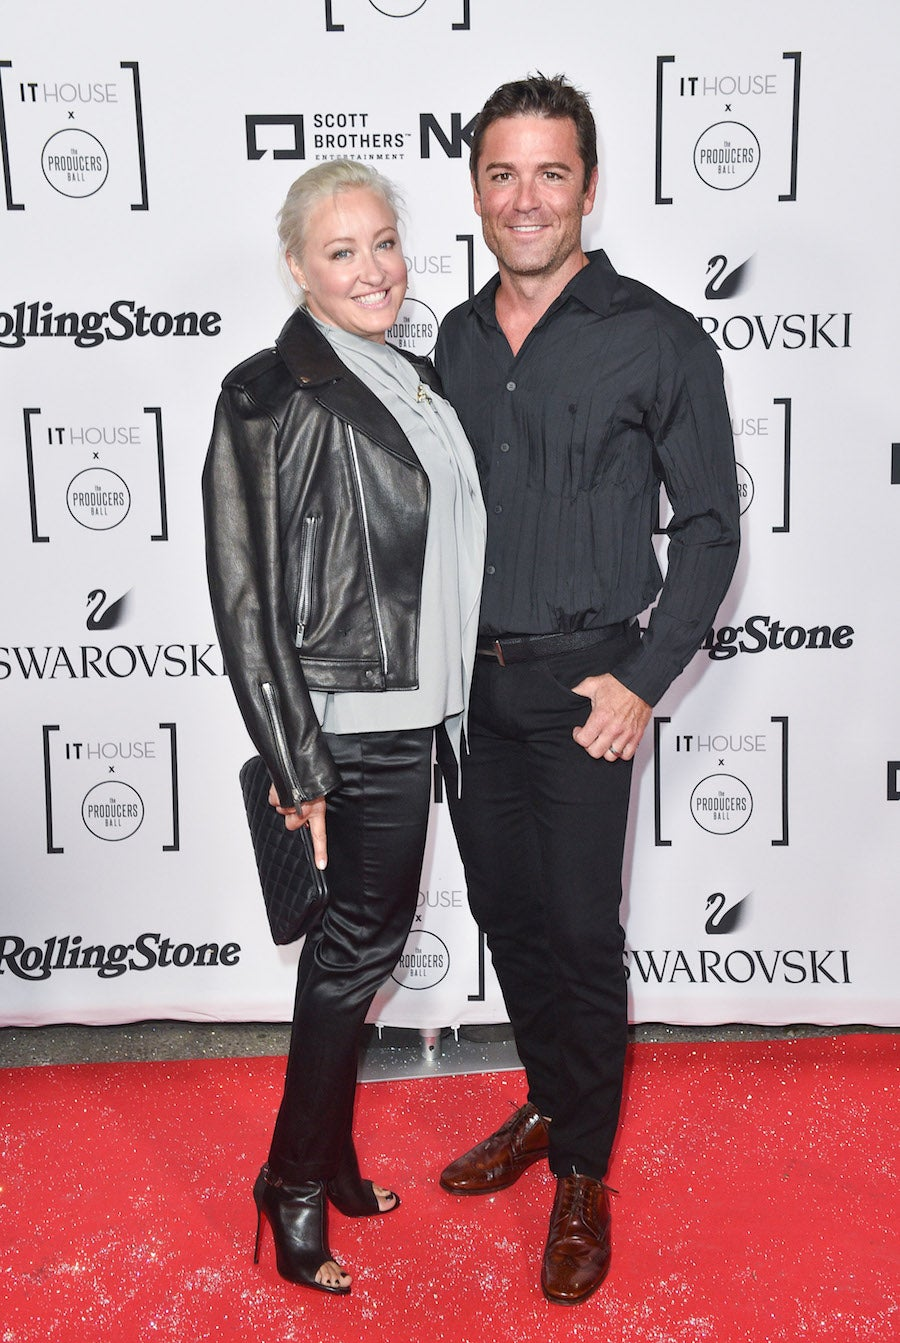 Shantelle and Yannick Bisson - IT House Producers Ball TIFF 2018 | SWAGGER Magazine